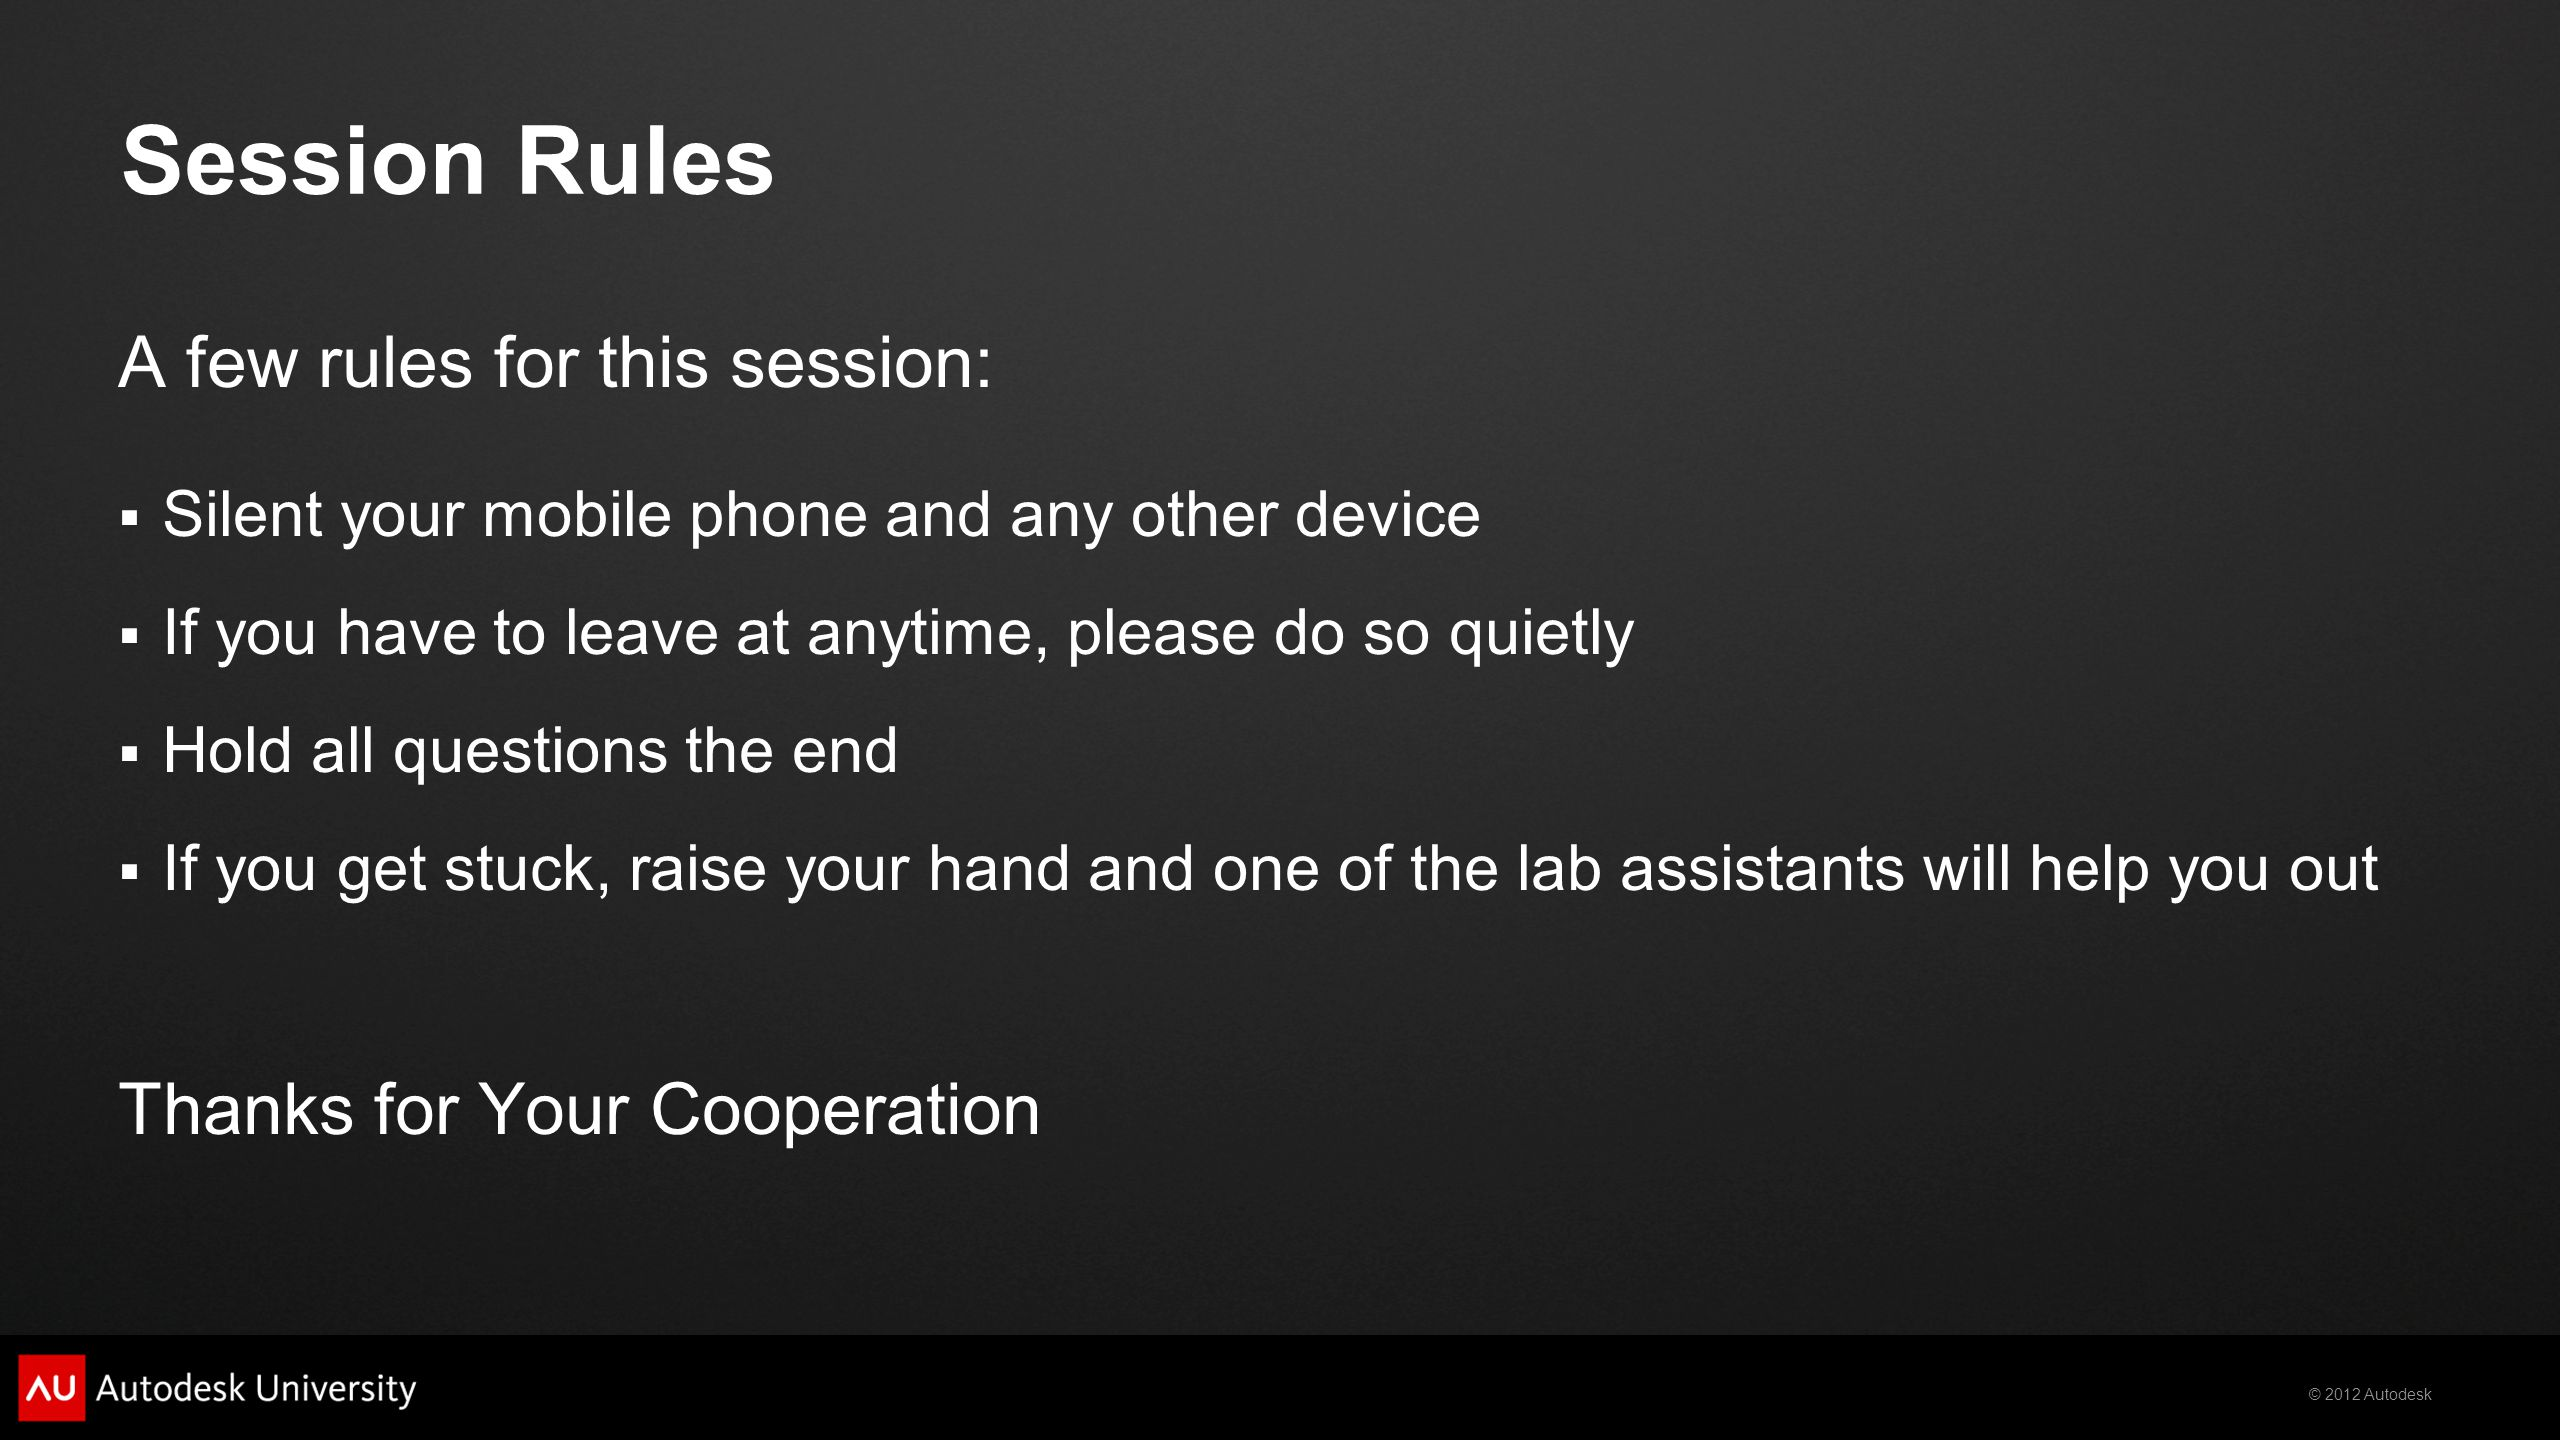 © 2012 Autodesk Session Rules A few rules for this session:  Silent your mobile phone and any other device  If you have to leave at anytime, please